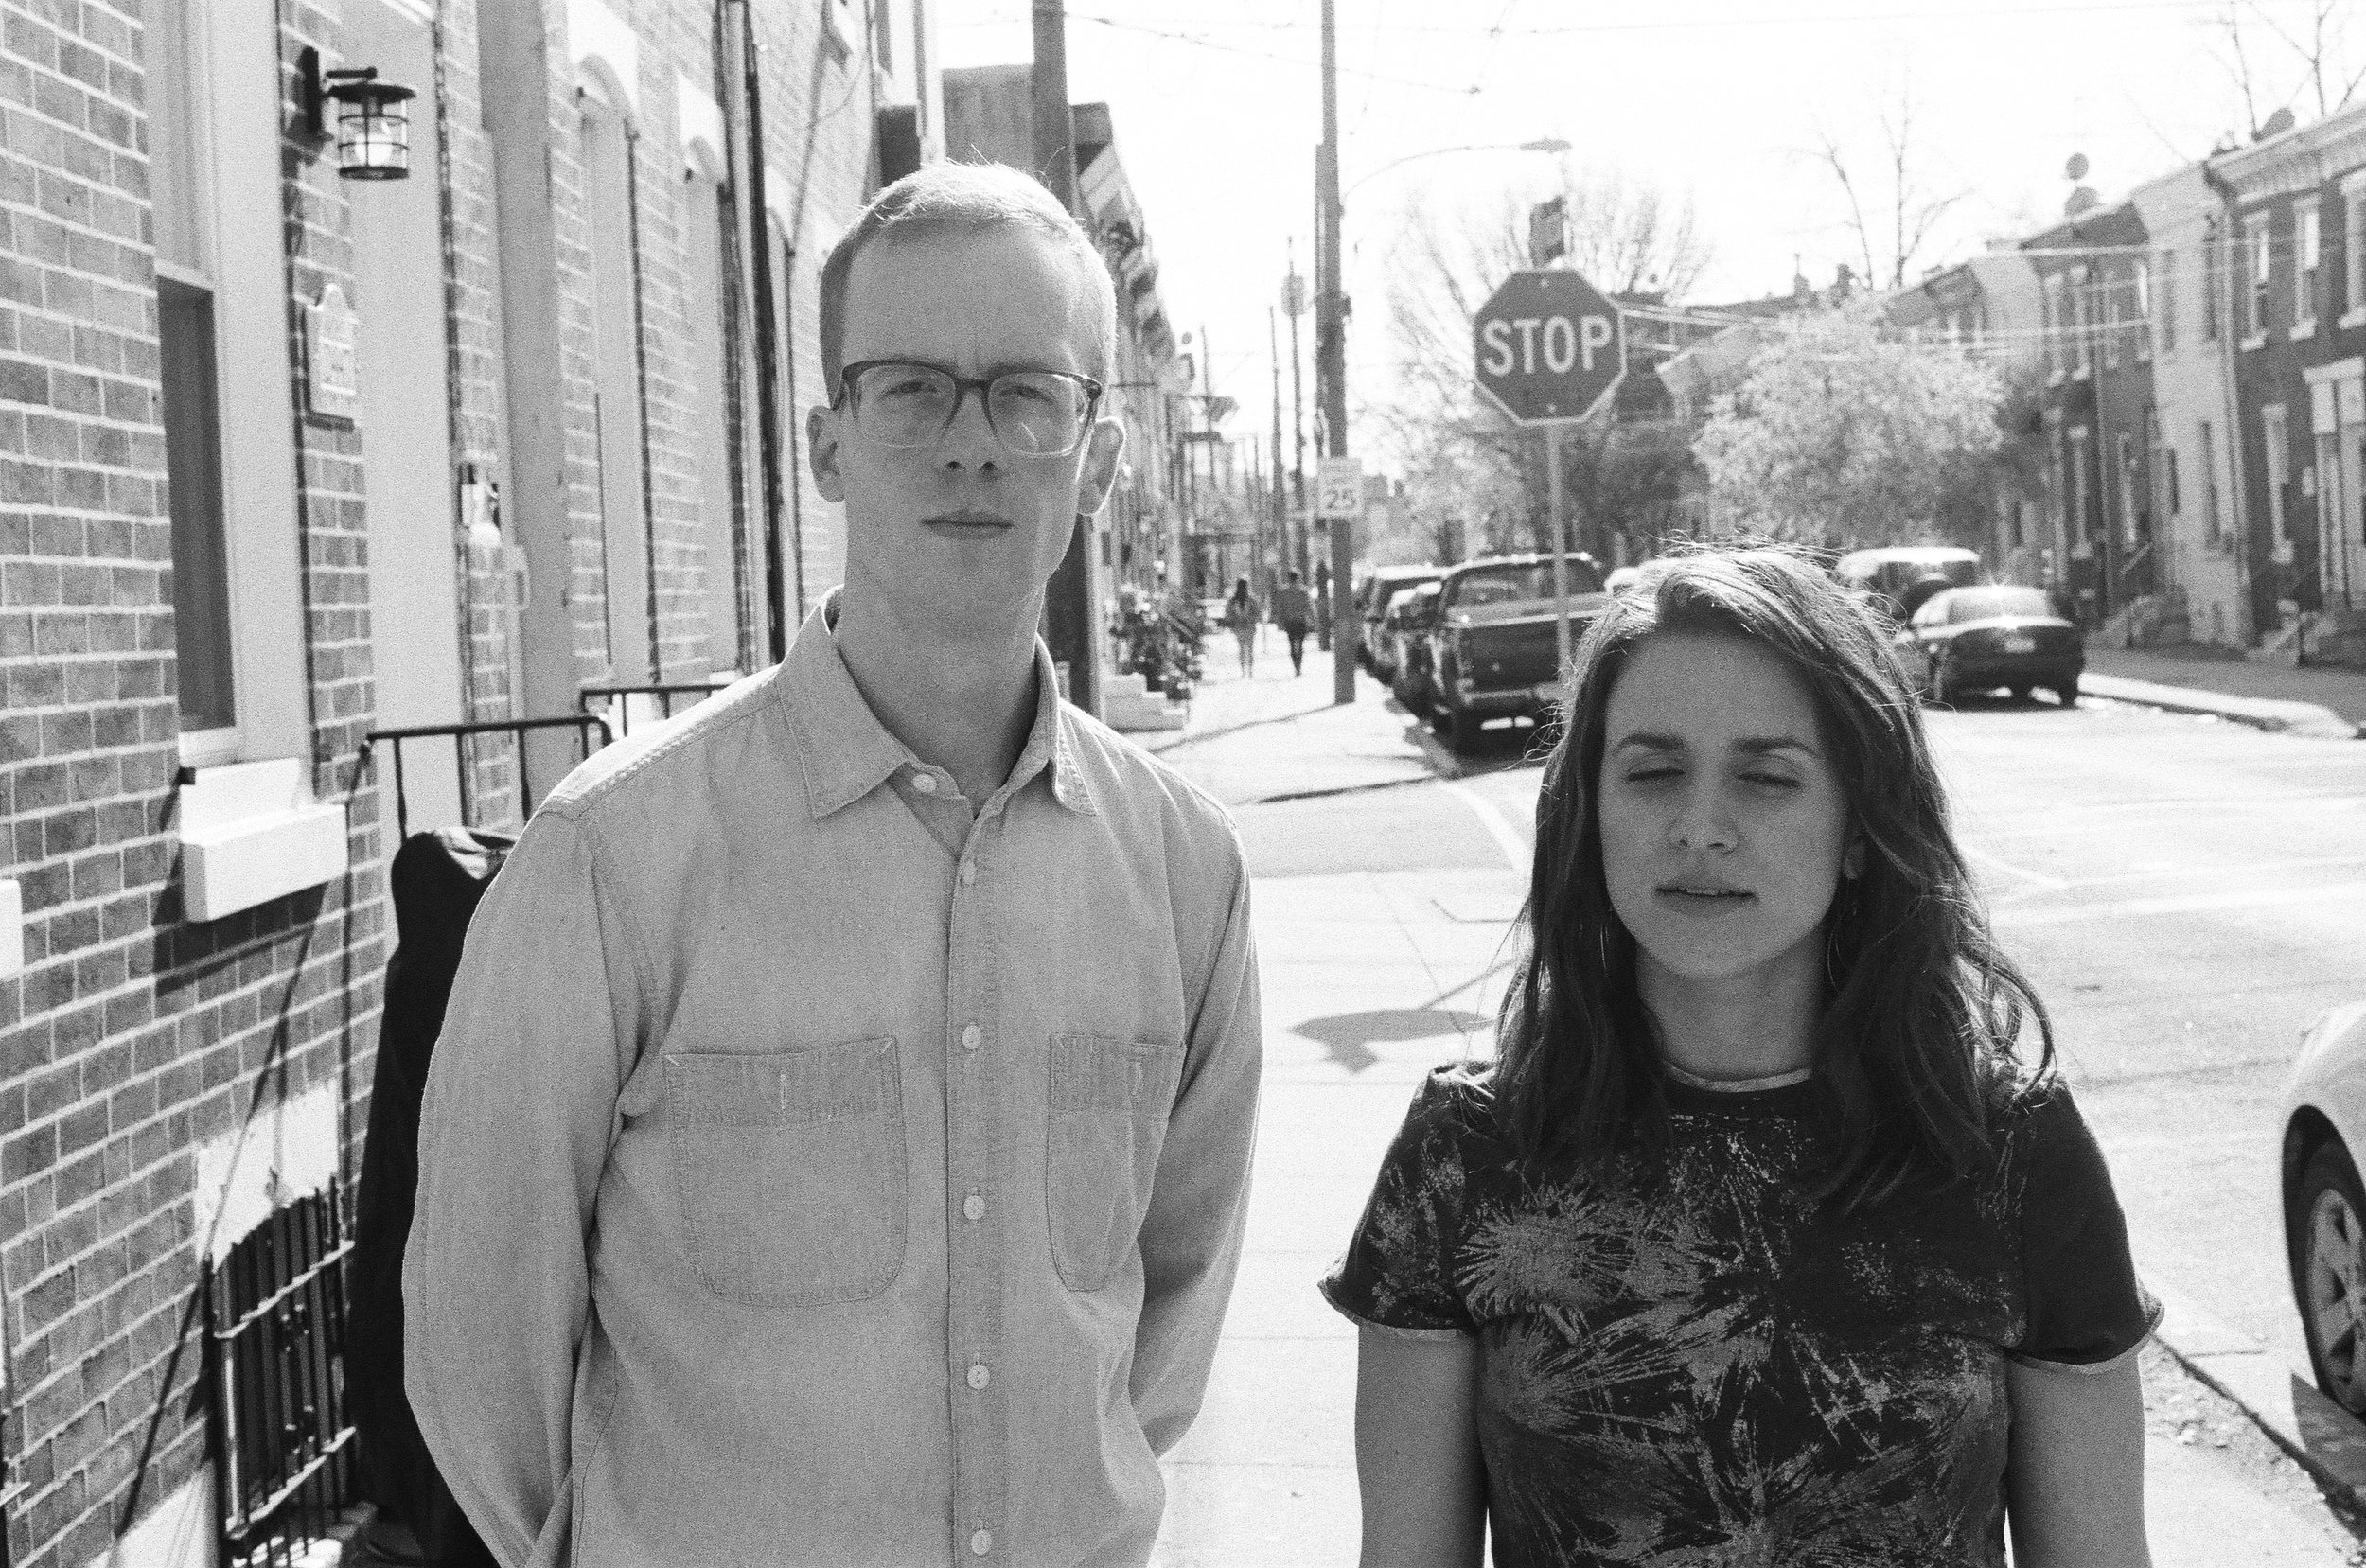 """Brother Martin - The Philly-based indie rock band is led by singer/saxophonist/accordionist, Maria Mirenzi, and pianist/vocalist, Daniel Espie. The band creates a quirky, dreamy world that is intimate, powerful, and theatrical, blending styles of rock, jazz and folk.In 2015, Maria and Dan began a long-distance, musical collaboration while living in 2 different countries. The first song they wrote was """"Martin,"""" a lament about Maria's dying dog, the last track on their debut EP, and the band's namesake. There's something so heartbreaking about not being able to say goodbye to the pet you grew up with, but a song would have to suffice. It usually does. """"Martin"""" captures the band's sensitivity and depth — you can't help but feel a little weepy. When they returned to the U.S. in 2016, they formed Brother Martin and continued to write songs about their neighborhood's lead pollution, political anti-anthems, and nostalgic themes on loss and the passage of time.Their debut EP """"Led-Son"""" was released in January of 2018."""